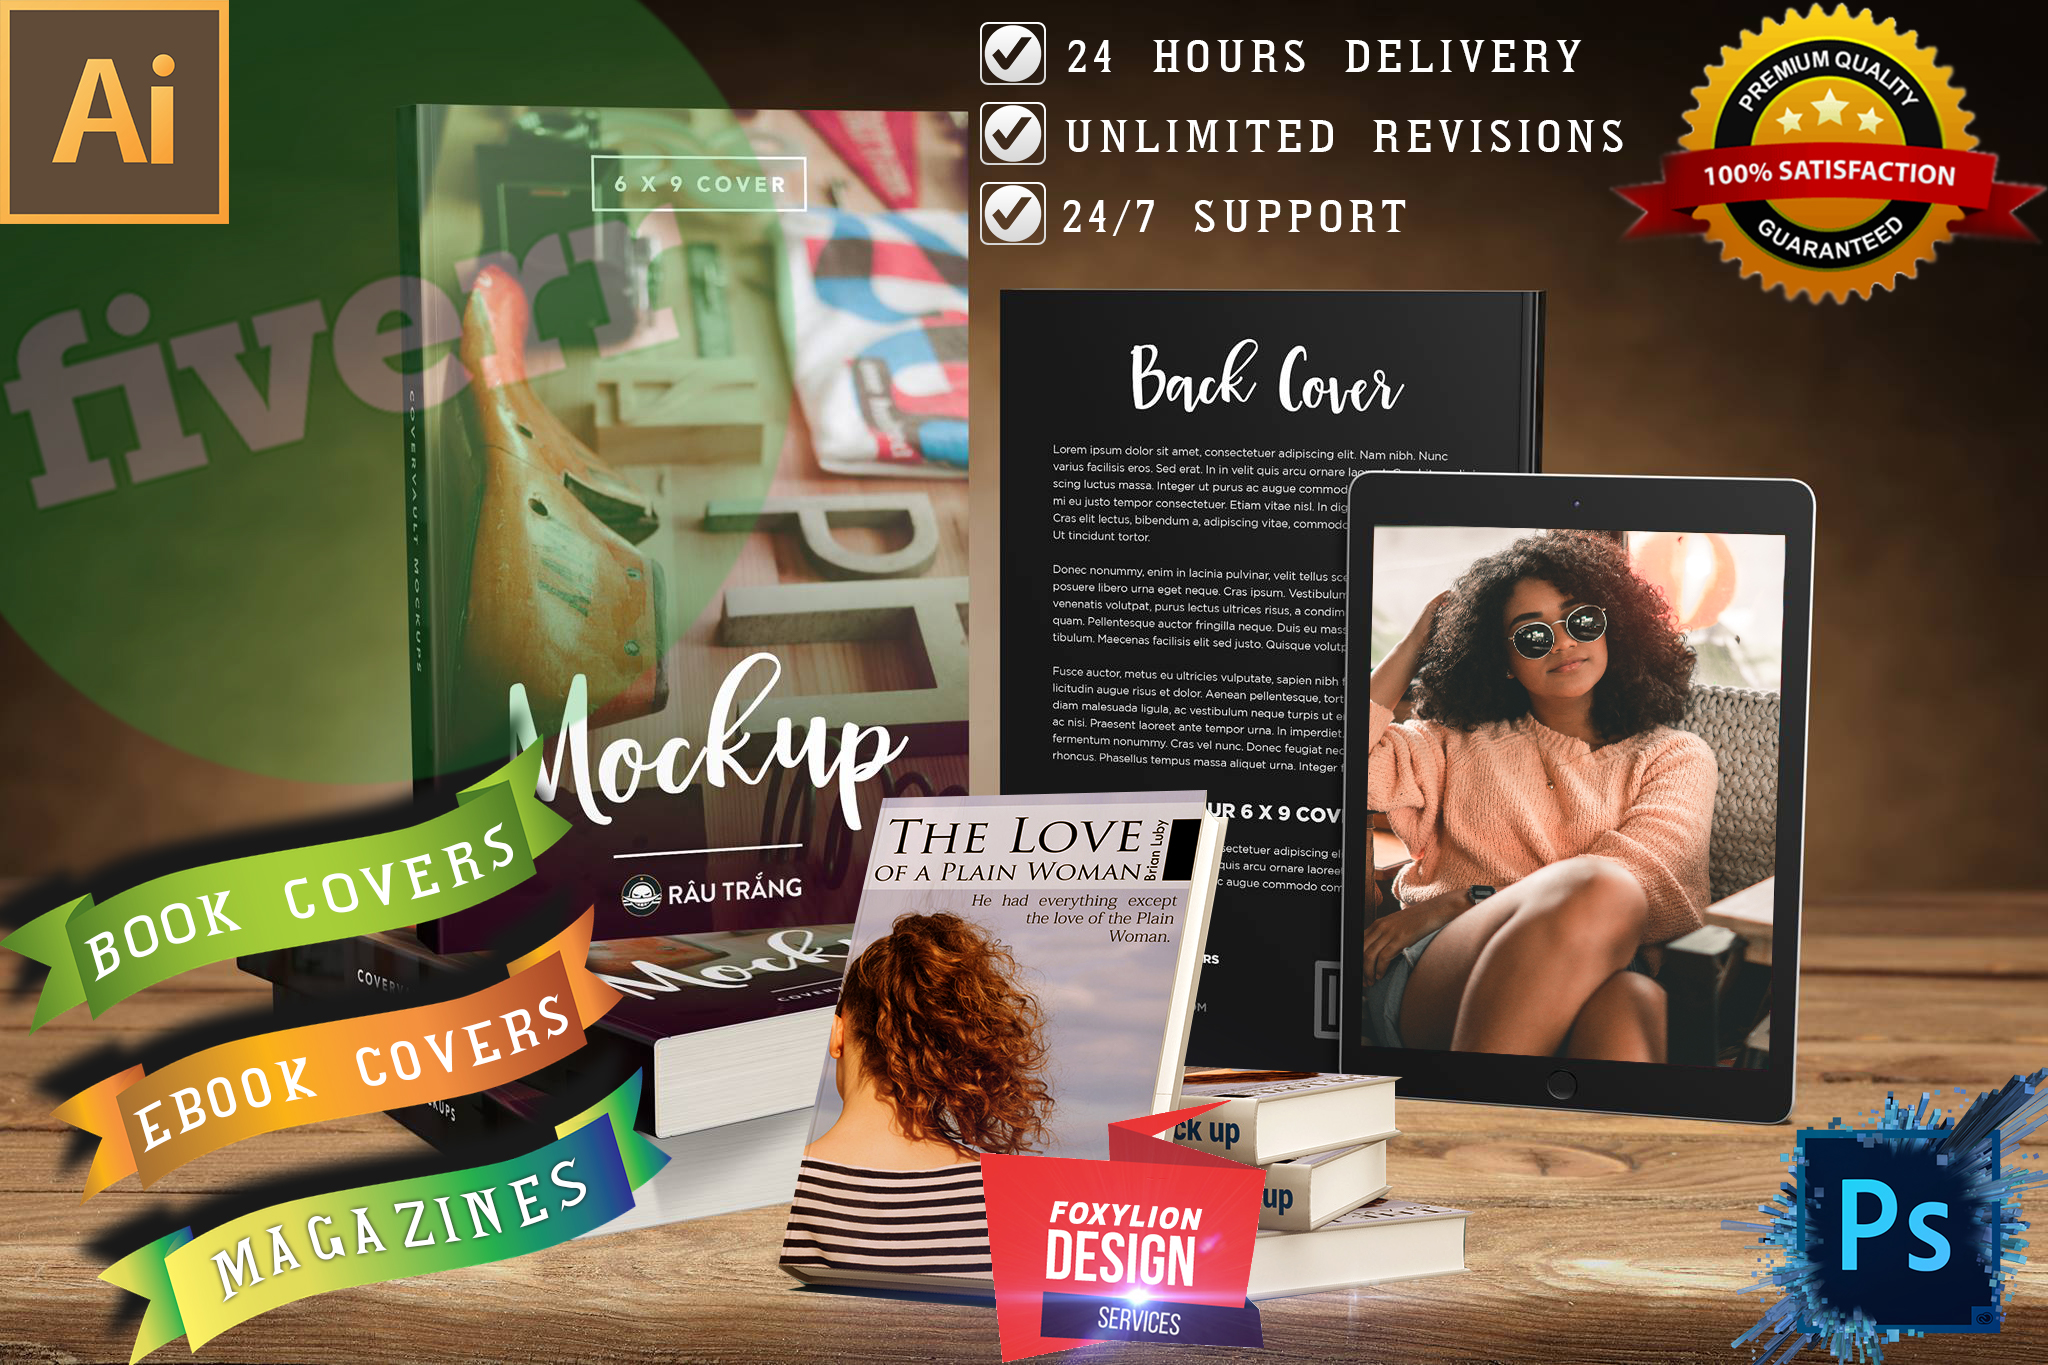 Get a creative ebook, magazine, kindle cover Design in 24hours